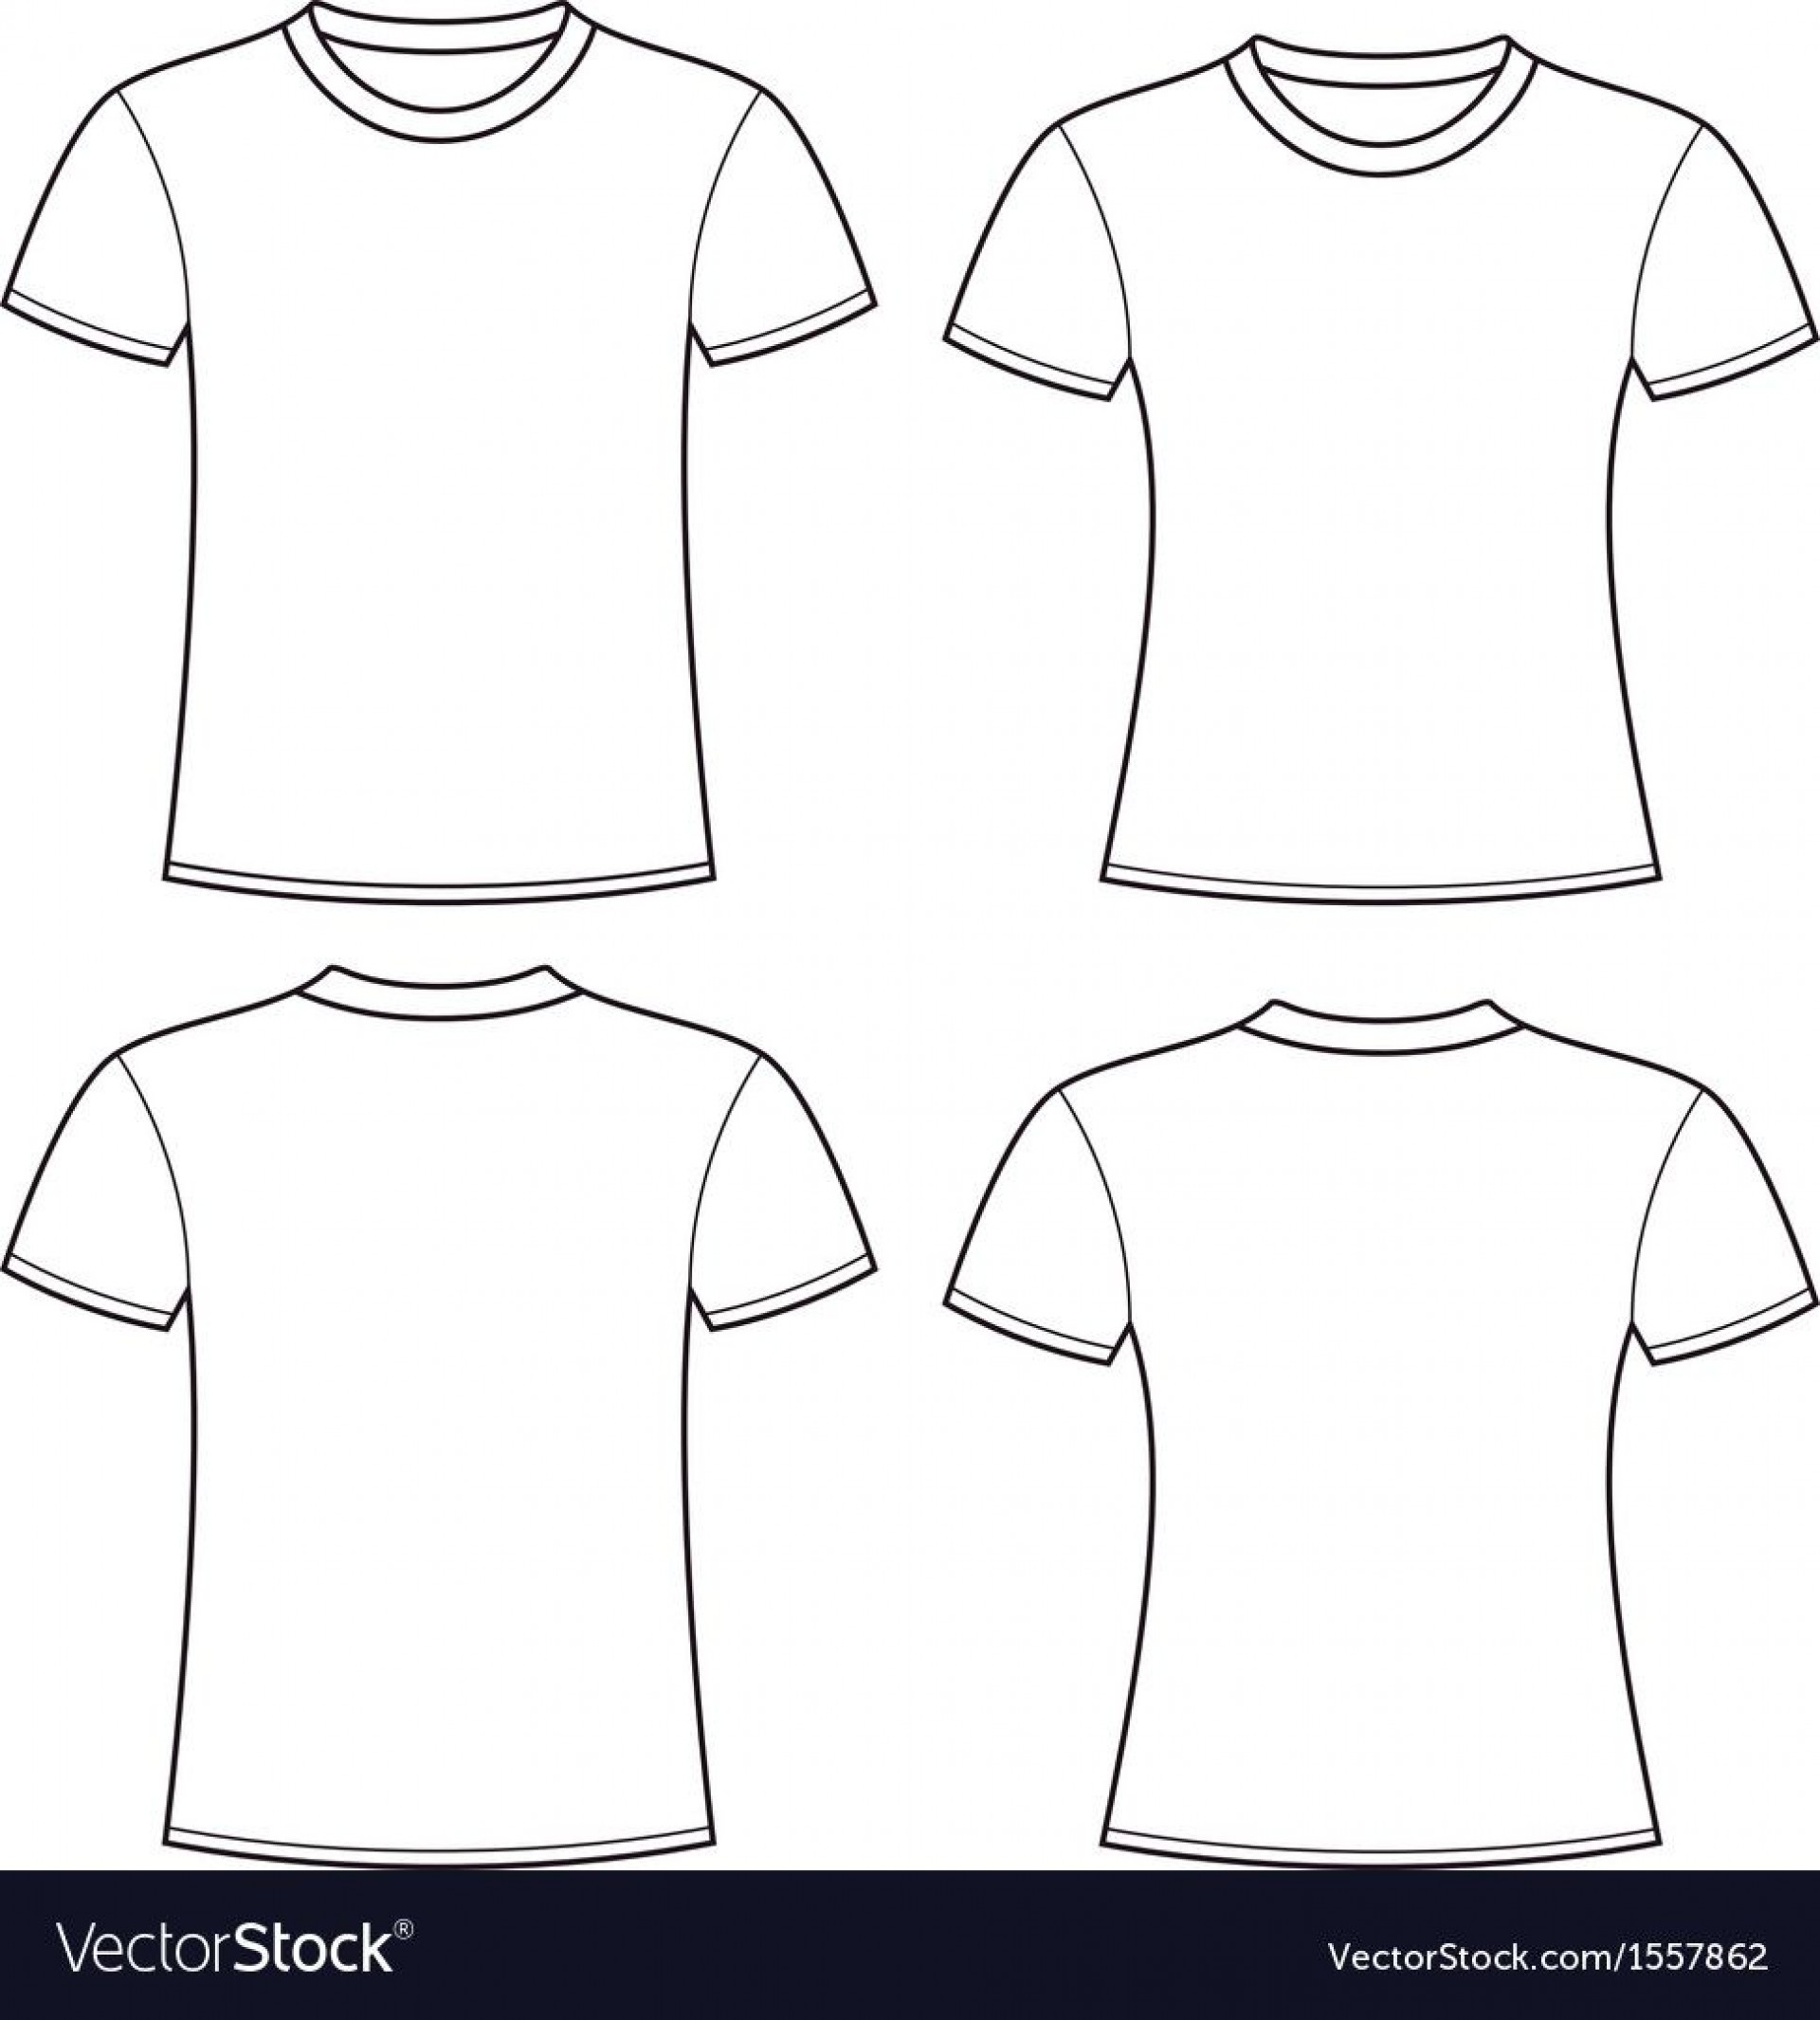 004 Impressive T Shirt Template Free High Definition  T-shirt Mockup Download Coreldraw Vector1920